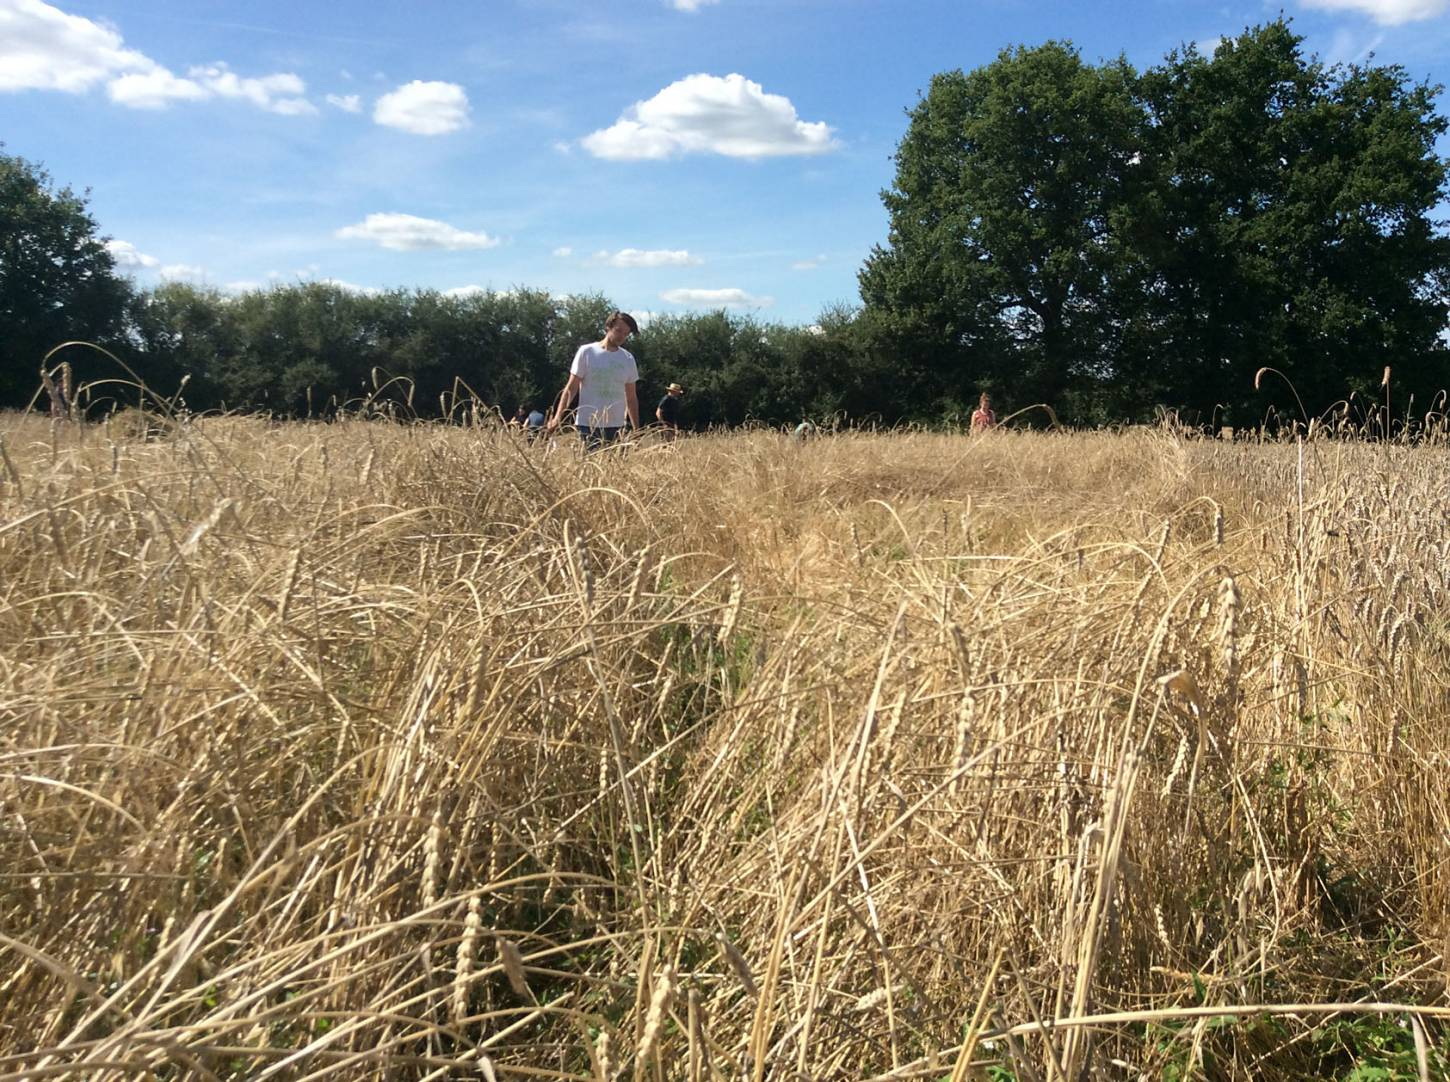 our manual harvest at Lodge Farm, pics = <a href='http://www.annbodkin.co.uk/' target='_blank'>Ann Bodkin</a> - 1:58pm&nbsp;13<sup>th</sup>&nbsp;Aug.&nbsp;'17